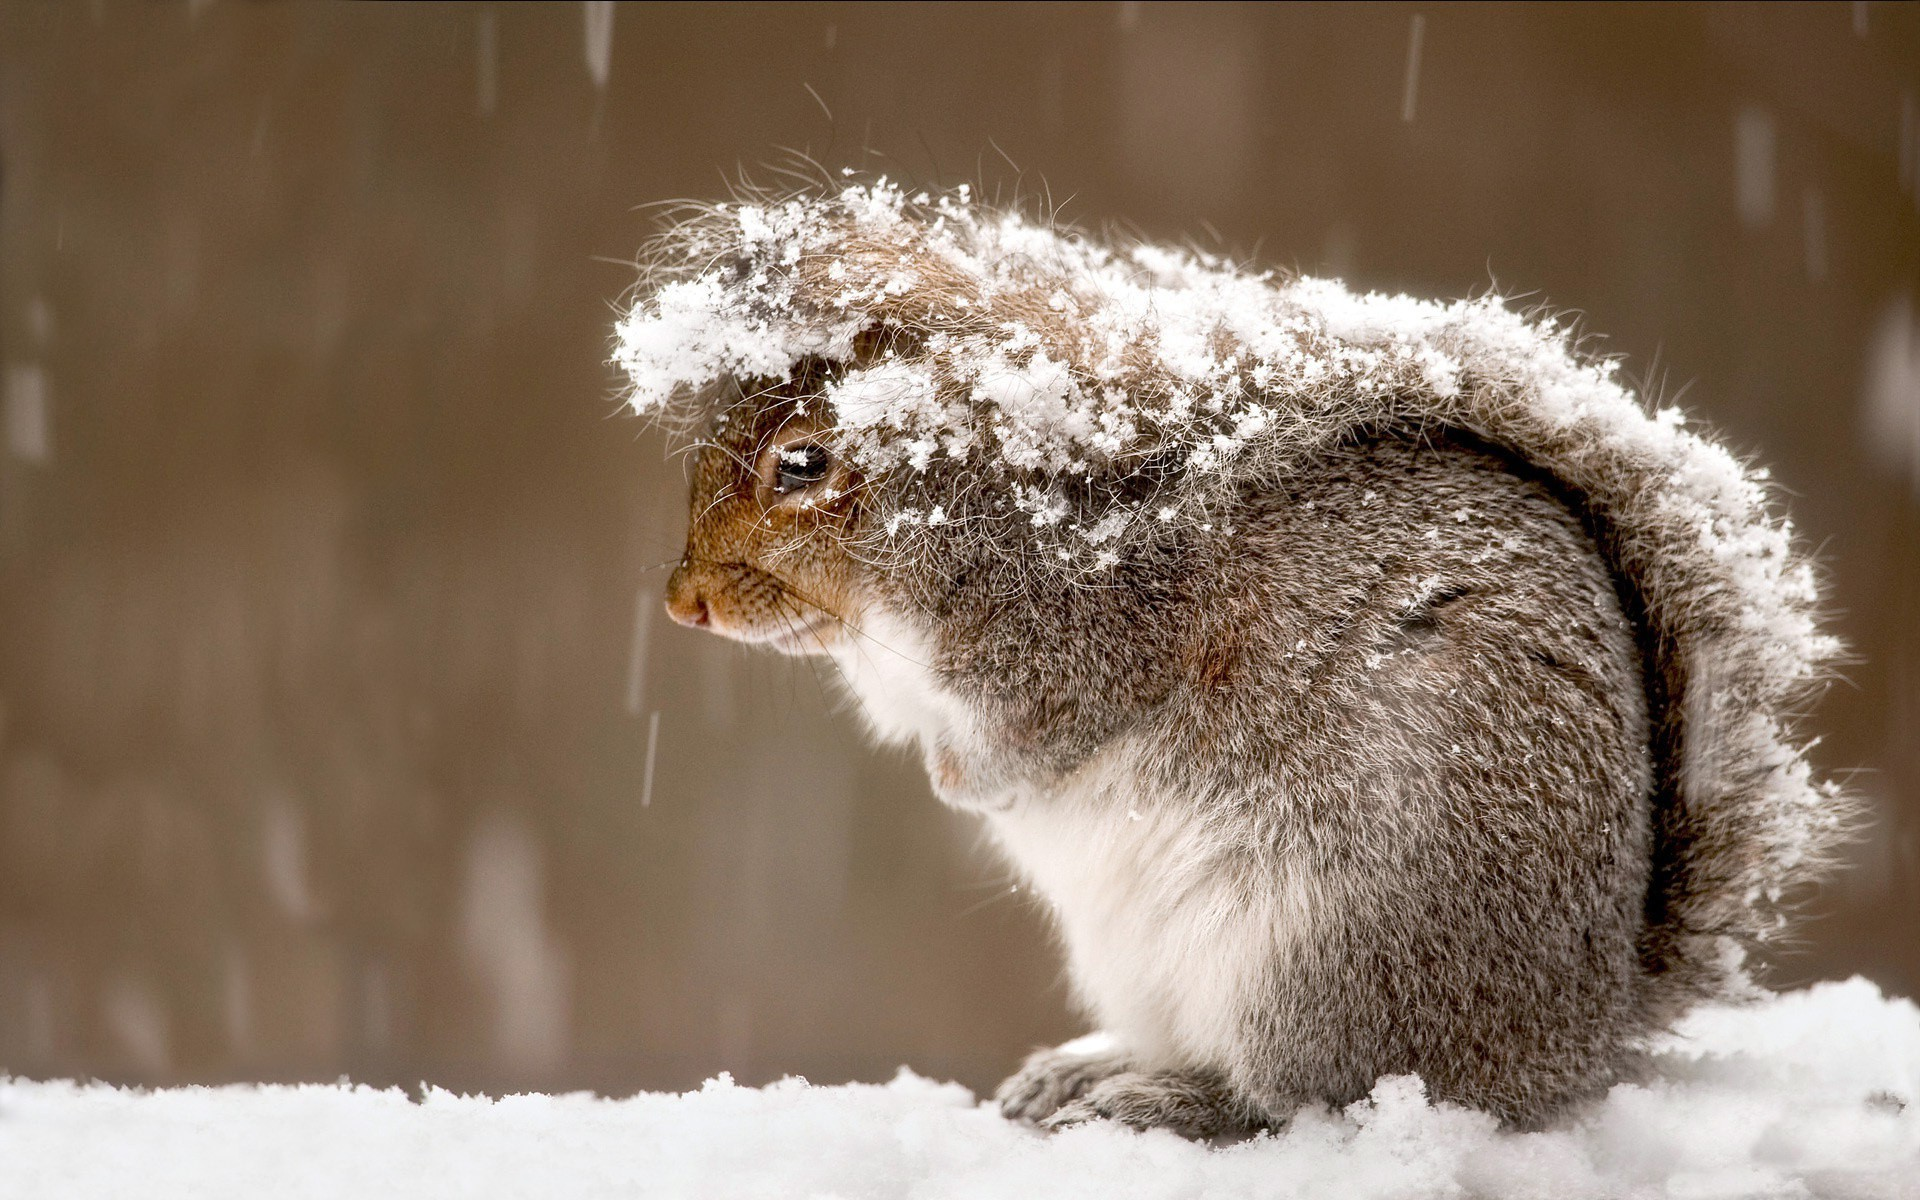 Wallpaper Hd For Desktop Full Screen Cute Baby Photography Squirrel Animals Snow Wallpapers Hd